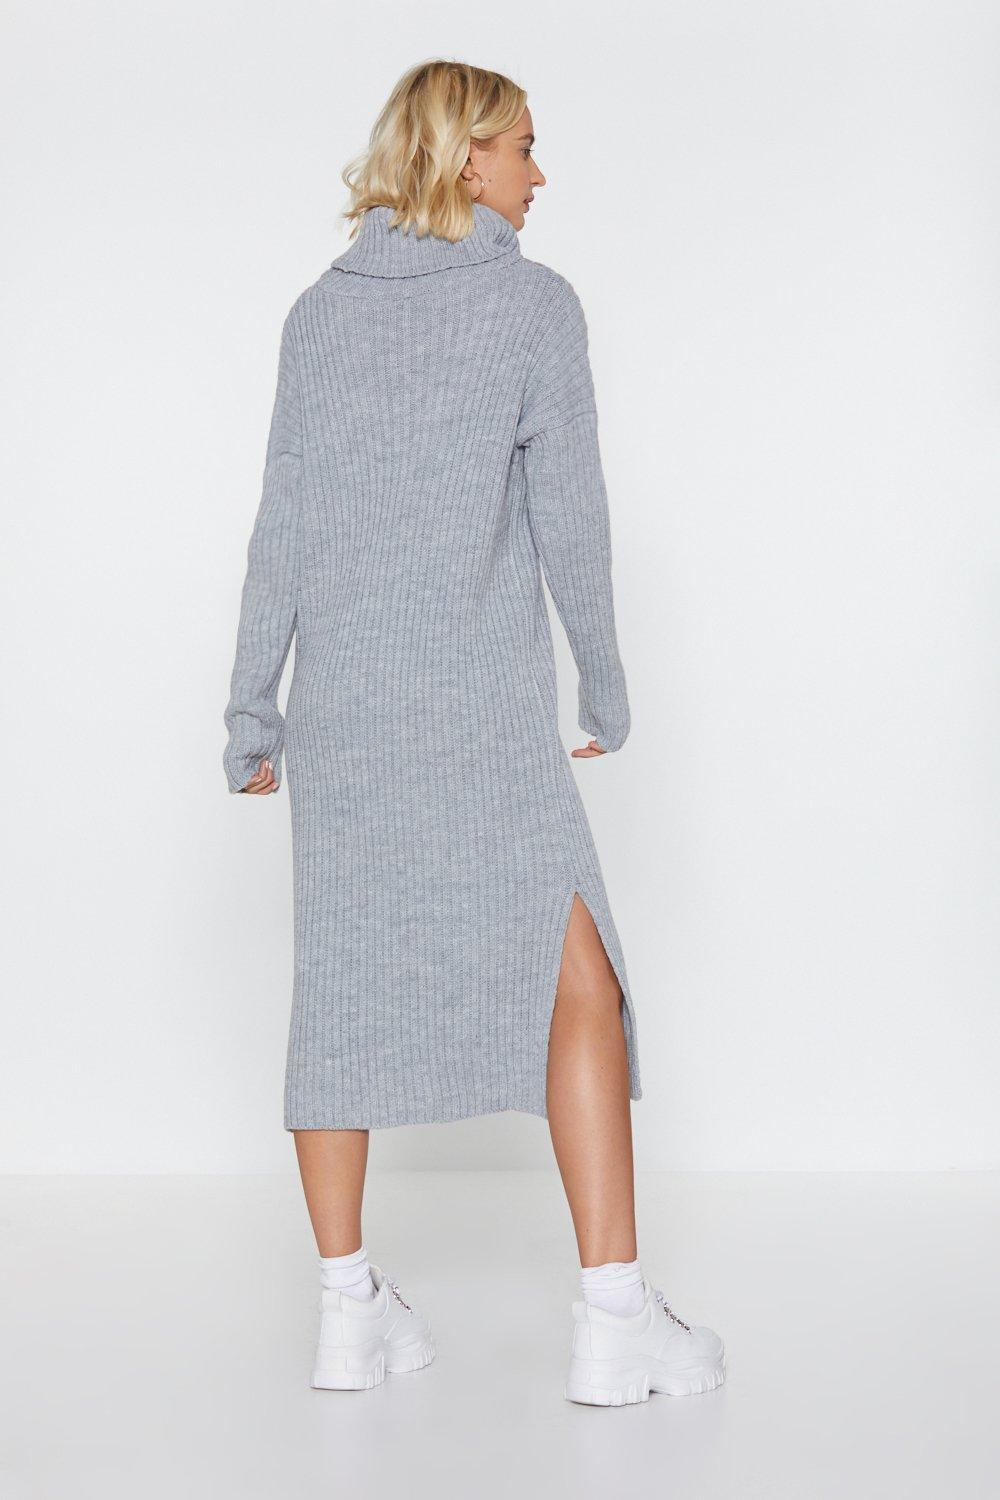 729d46f897c Womens Grey marl Let s Get Things Rolling Turtleneck Sweater Dress